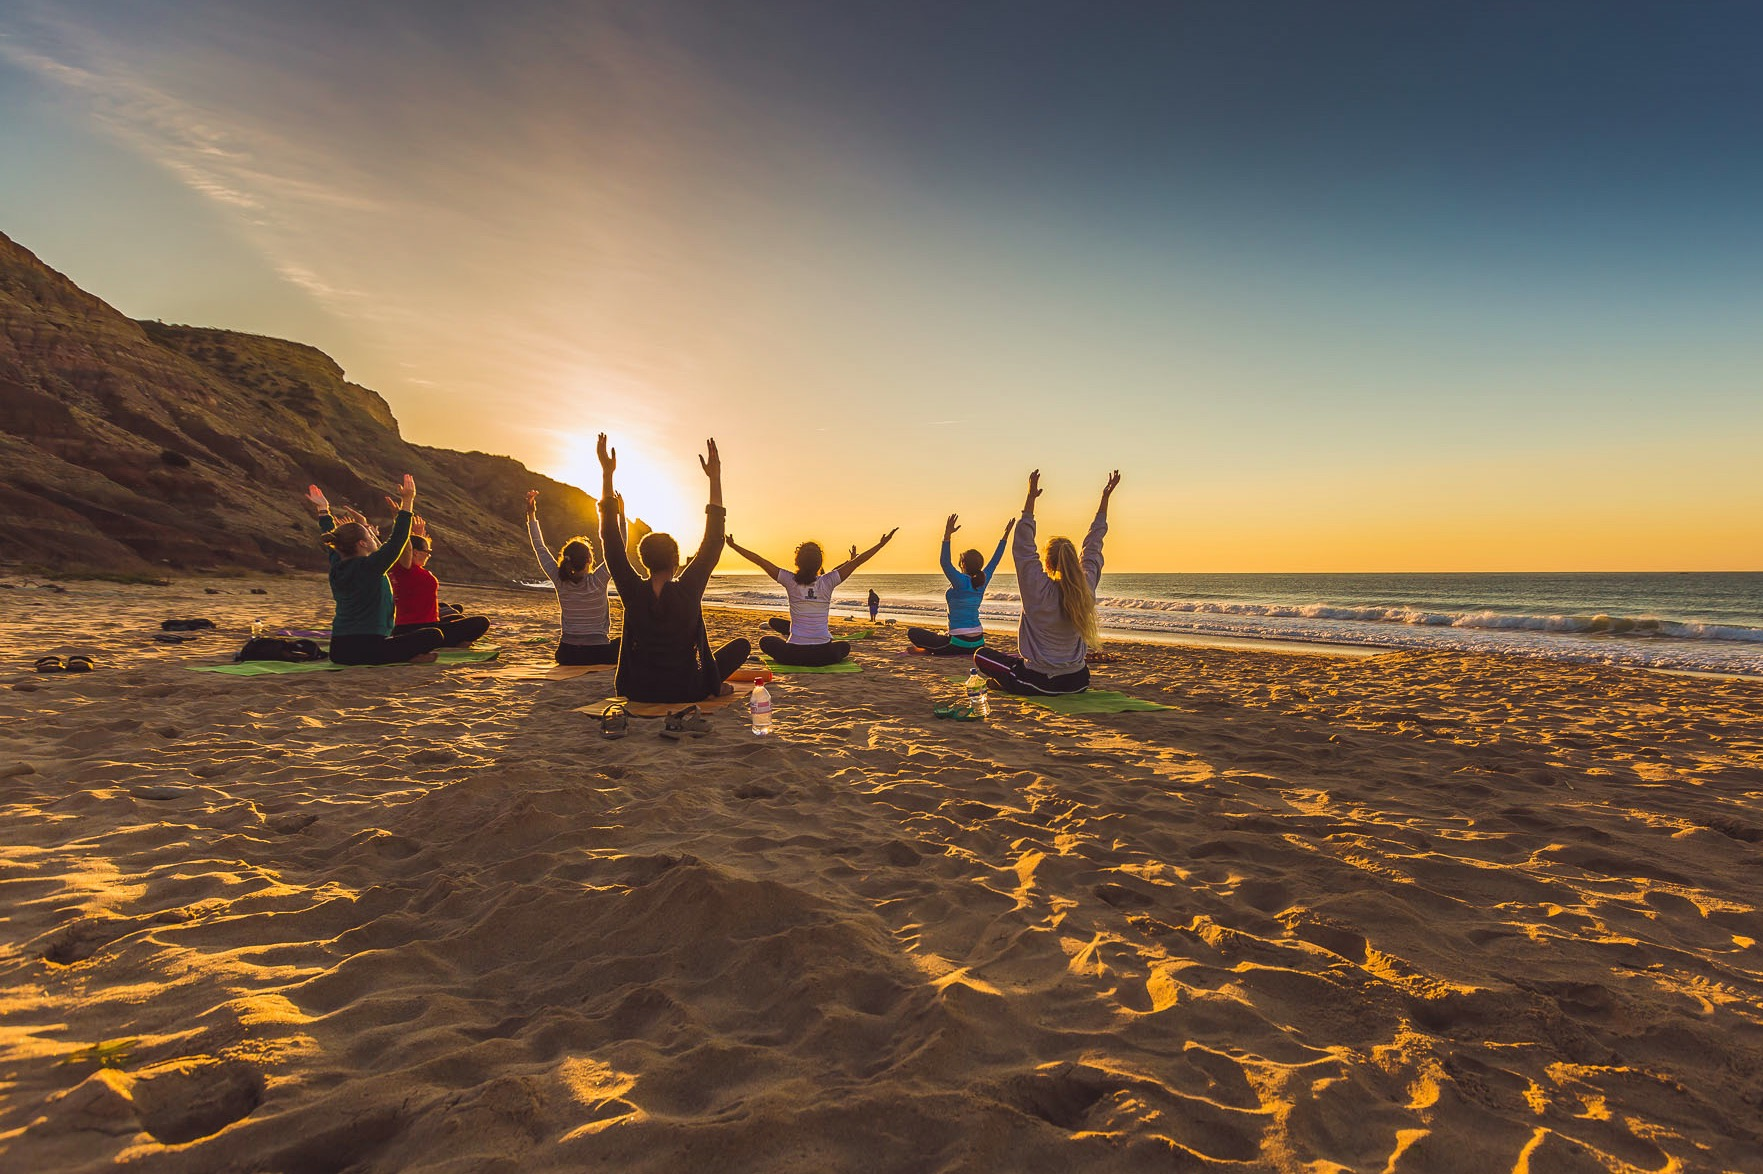 Yoga beach sunset crop.jpg